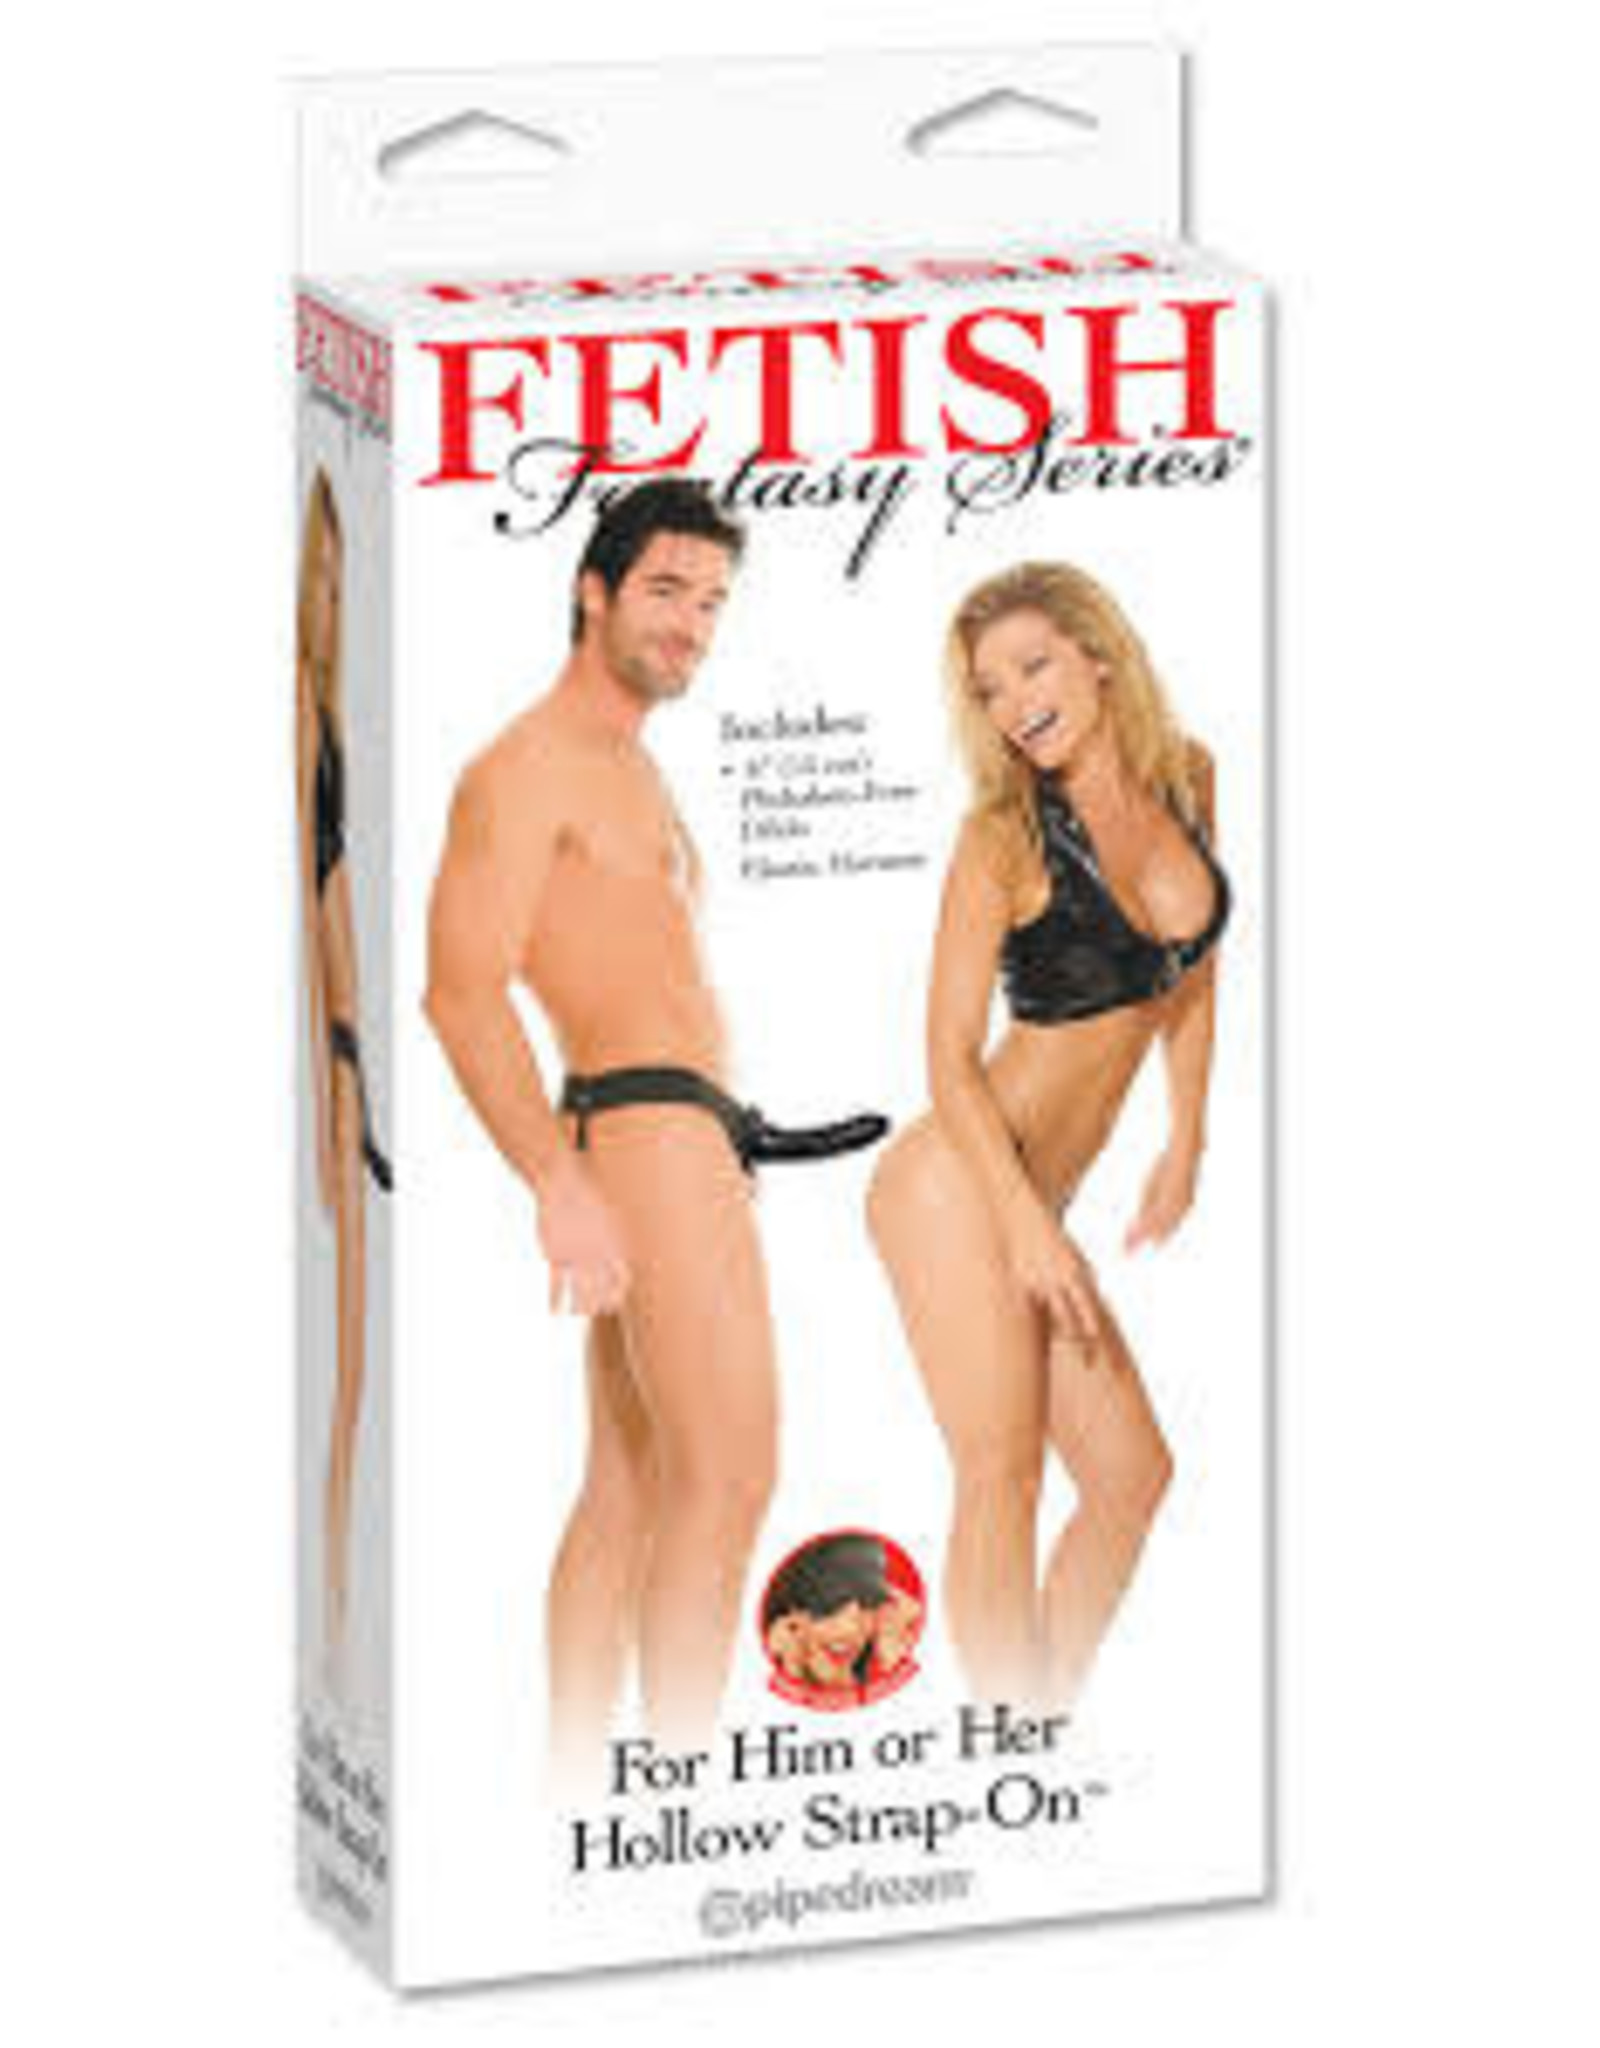 FETISH FANTASY HOLLOW STRAP-ON HIM OR HER - BLACK